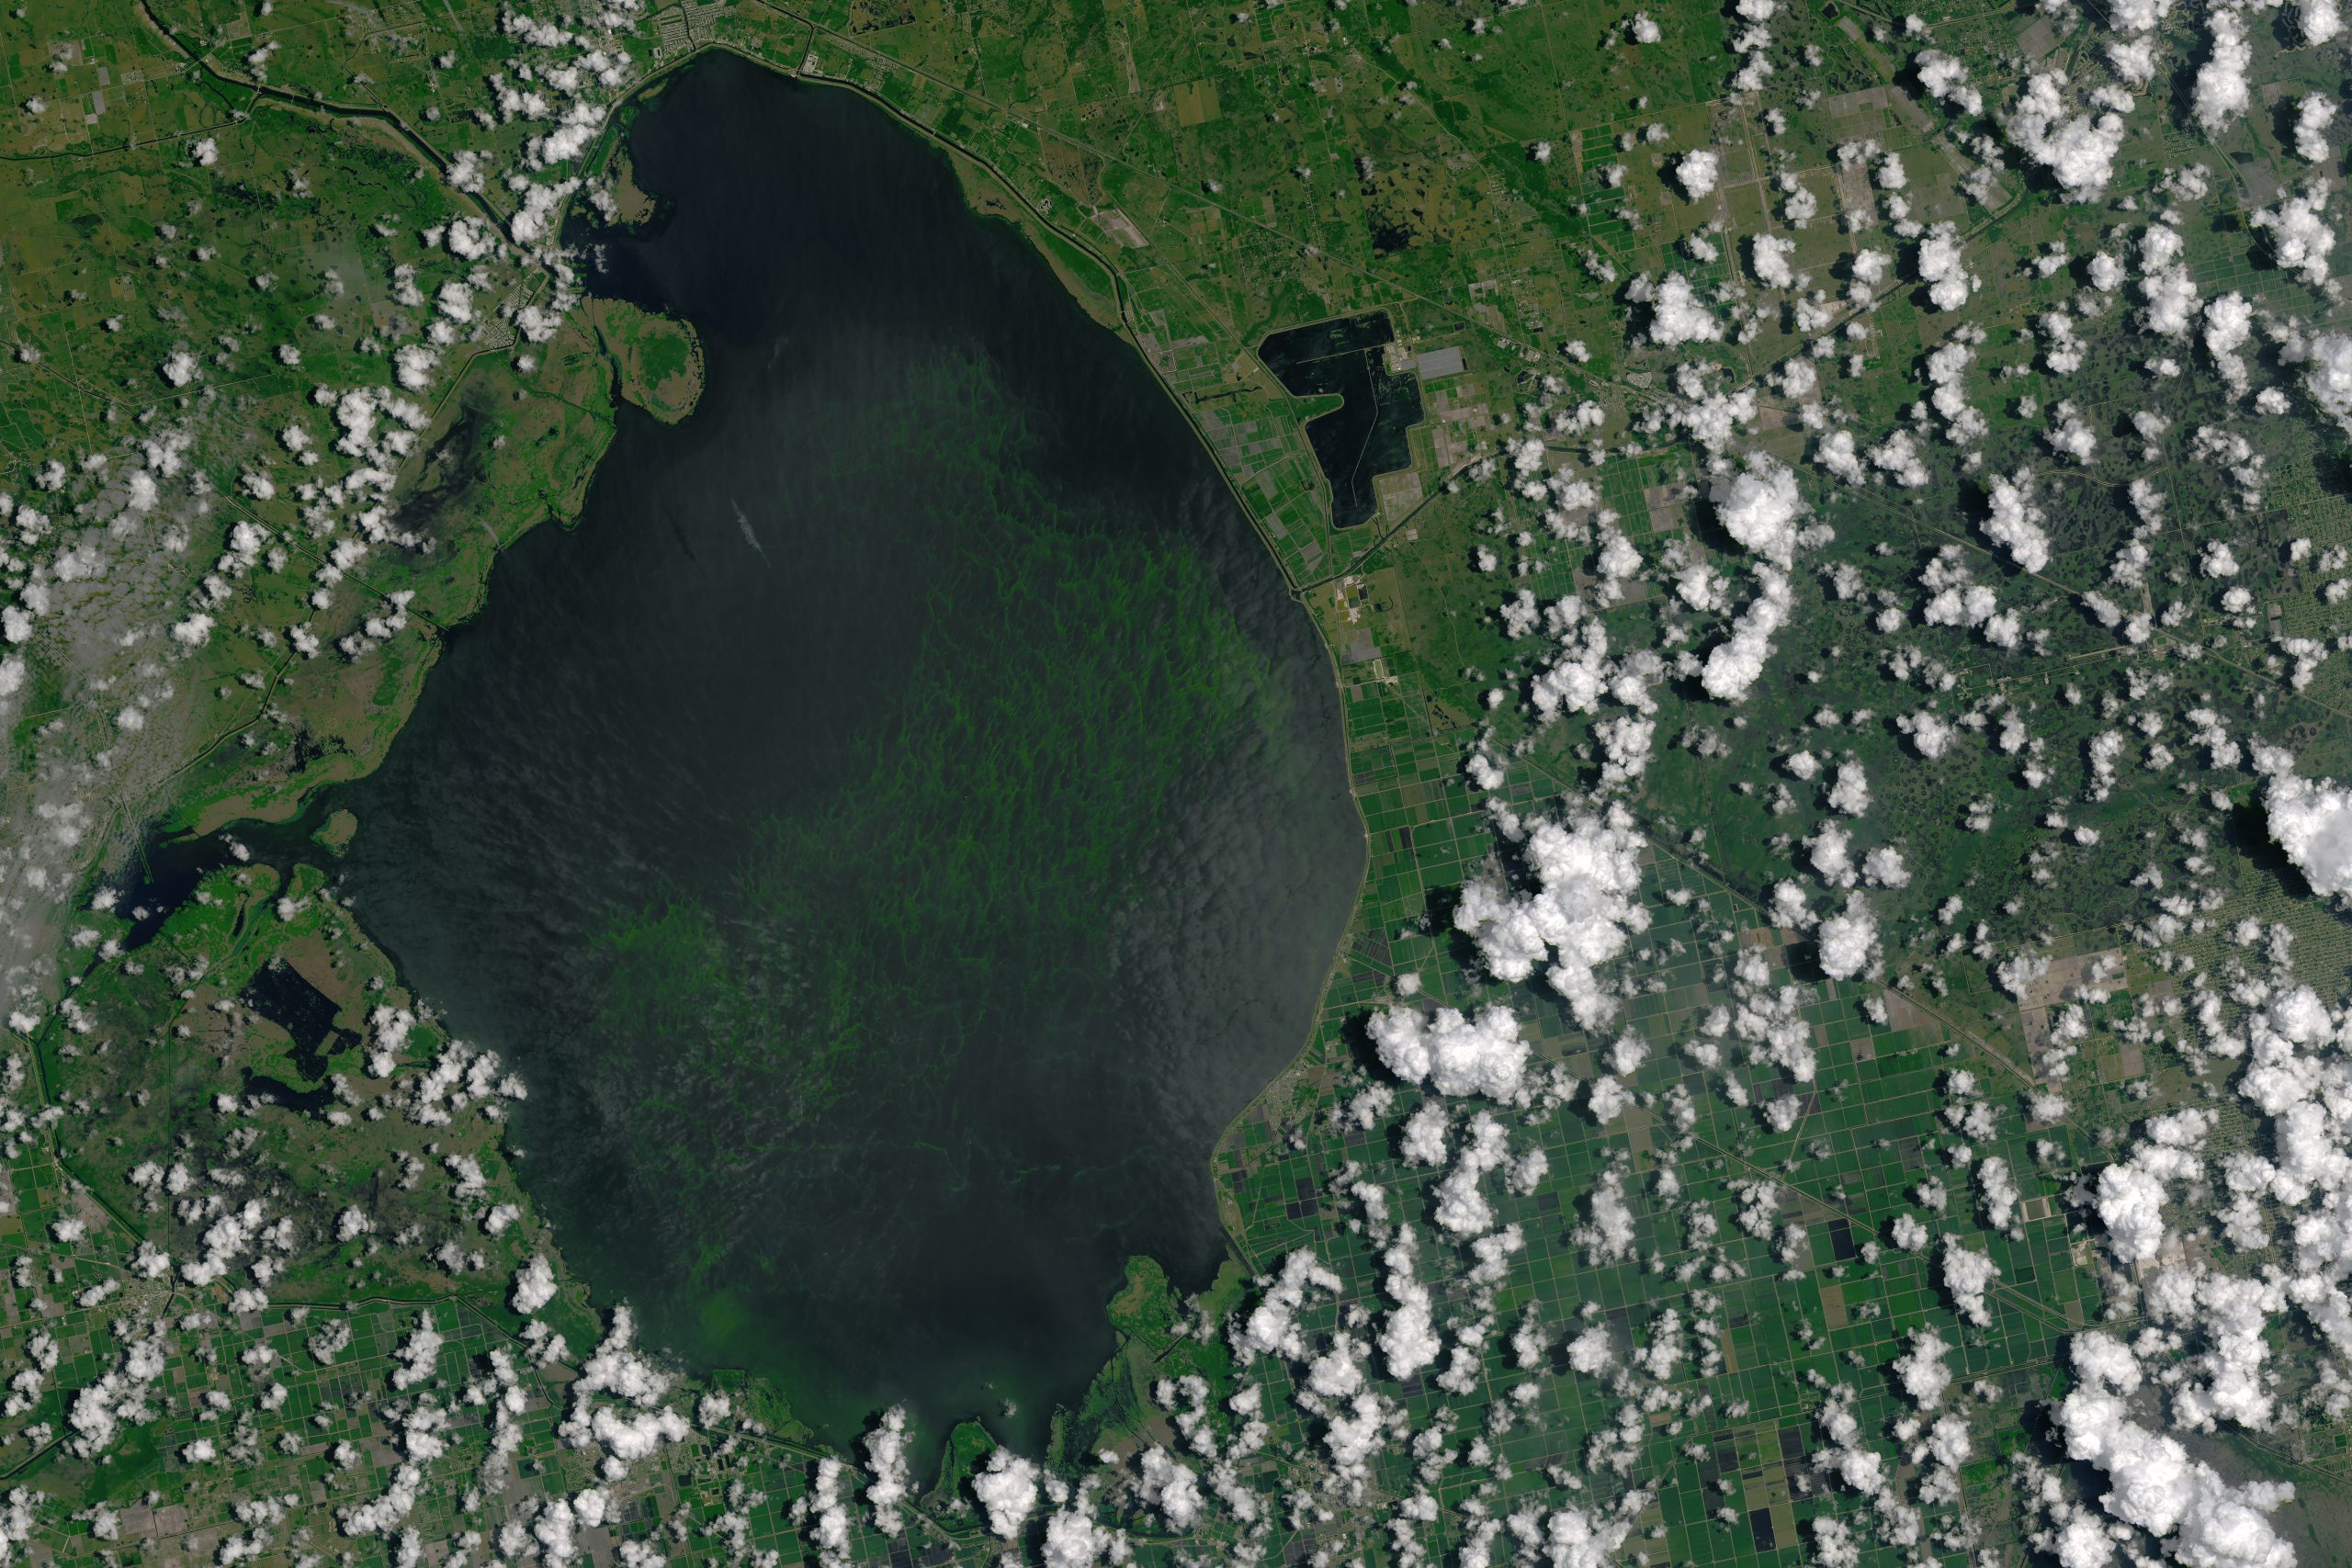 Everglades algae bloom